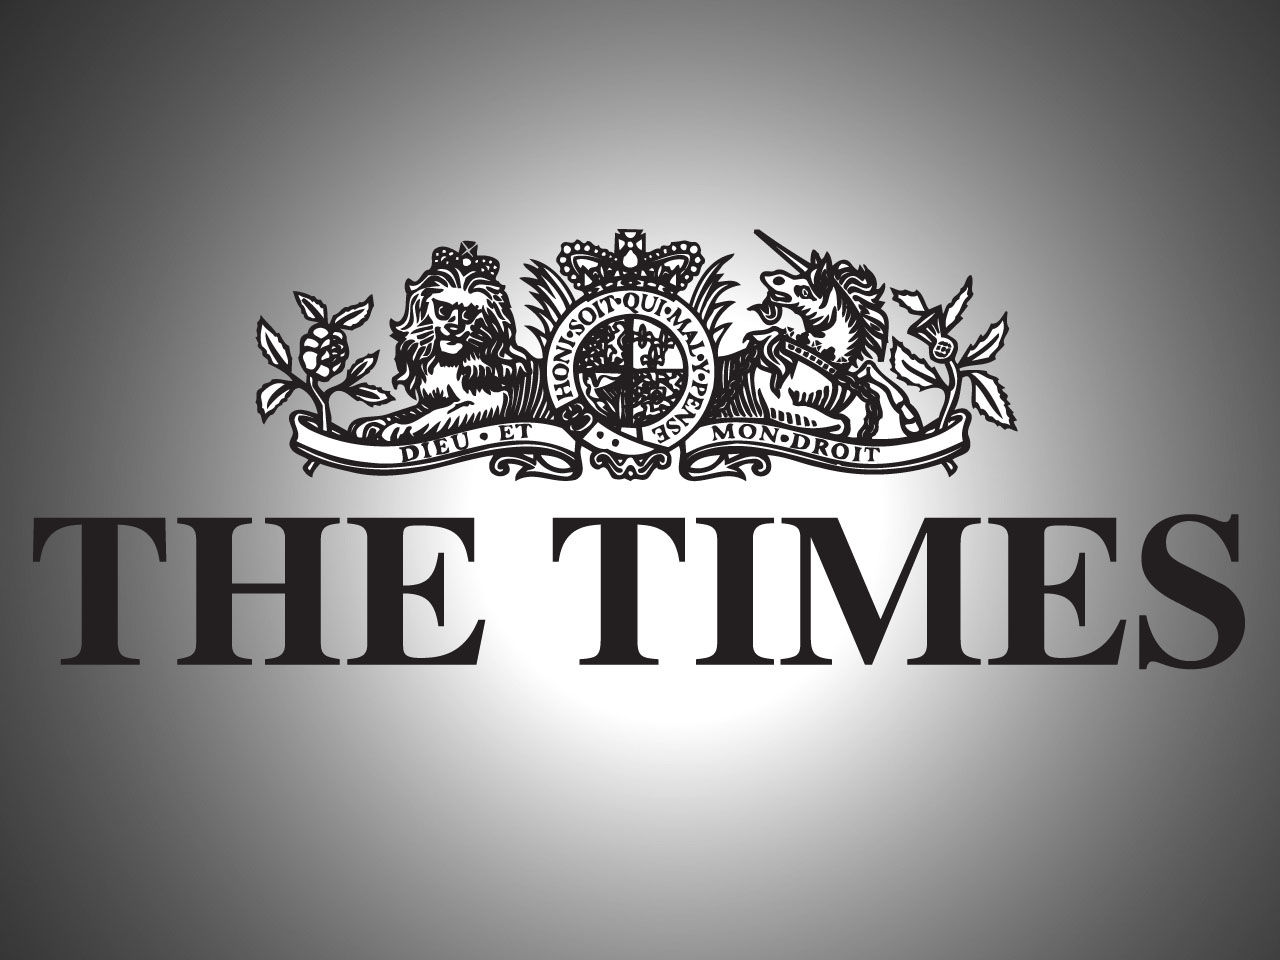 Zhero provide a new perspective on outsourcing - The Times Newspaper